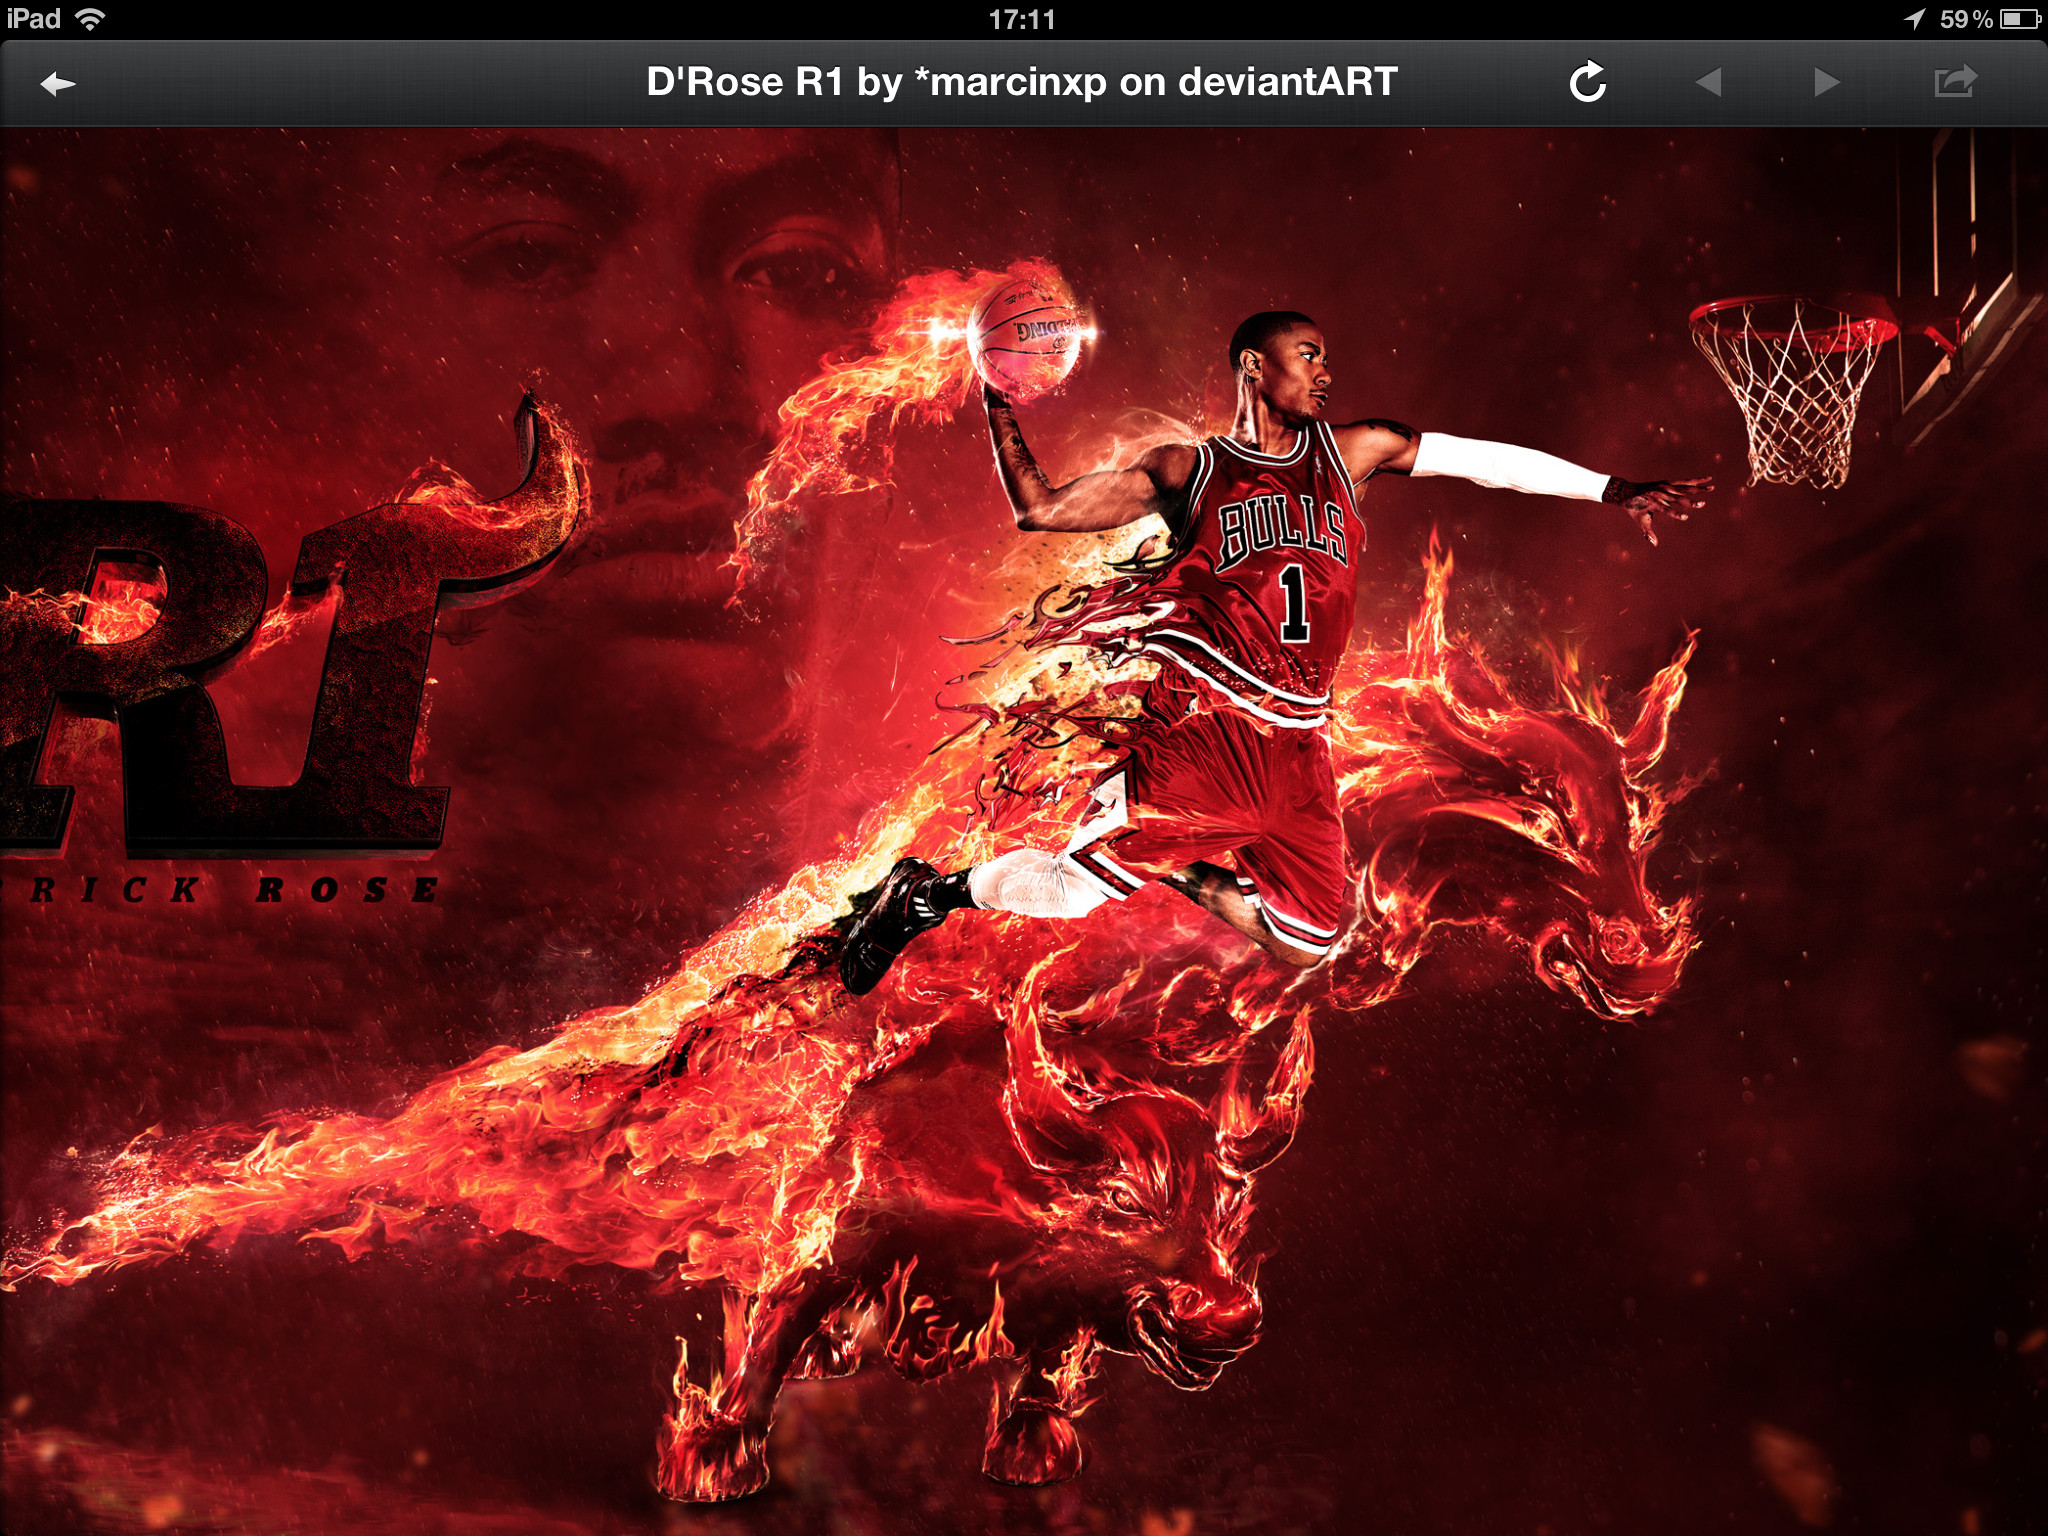 Derrick Rose Bulls HD Wallpaper For Macs with ID 2566 on Sports category in  Amazing Wallpaperz. Derrick Rose Bulls HD Wallpaper For Macs is one from  many …